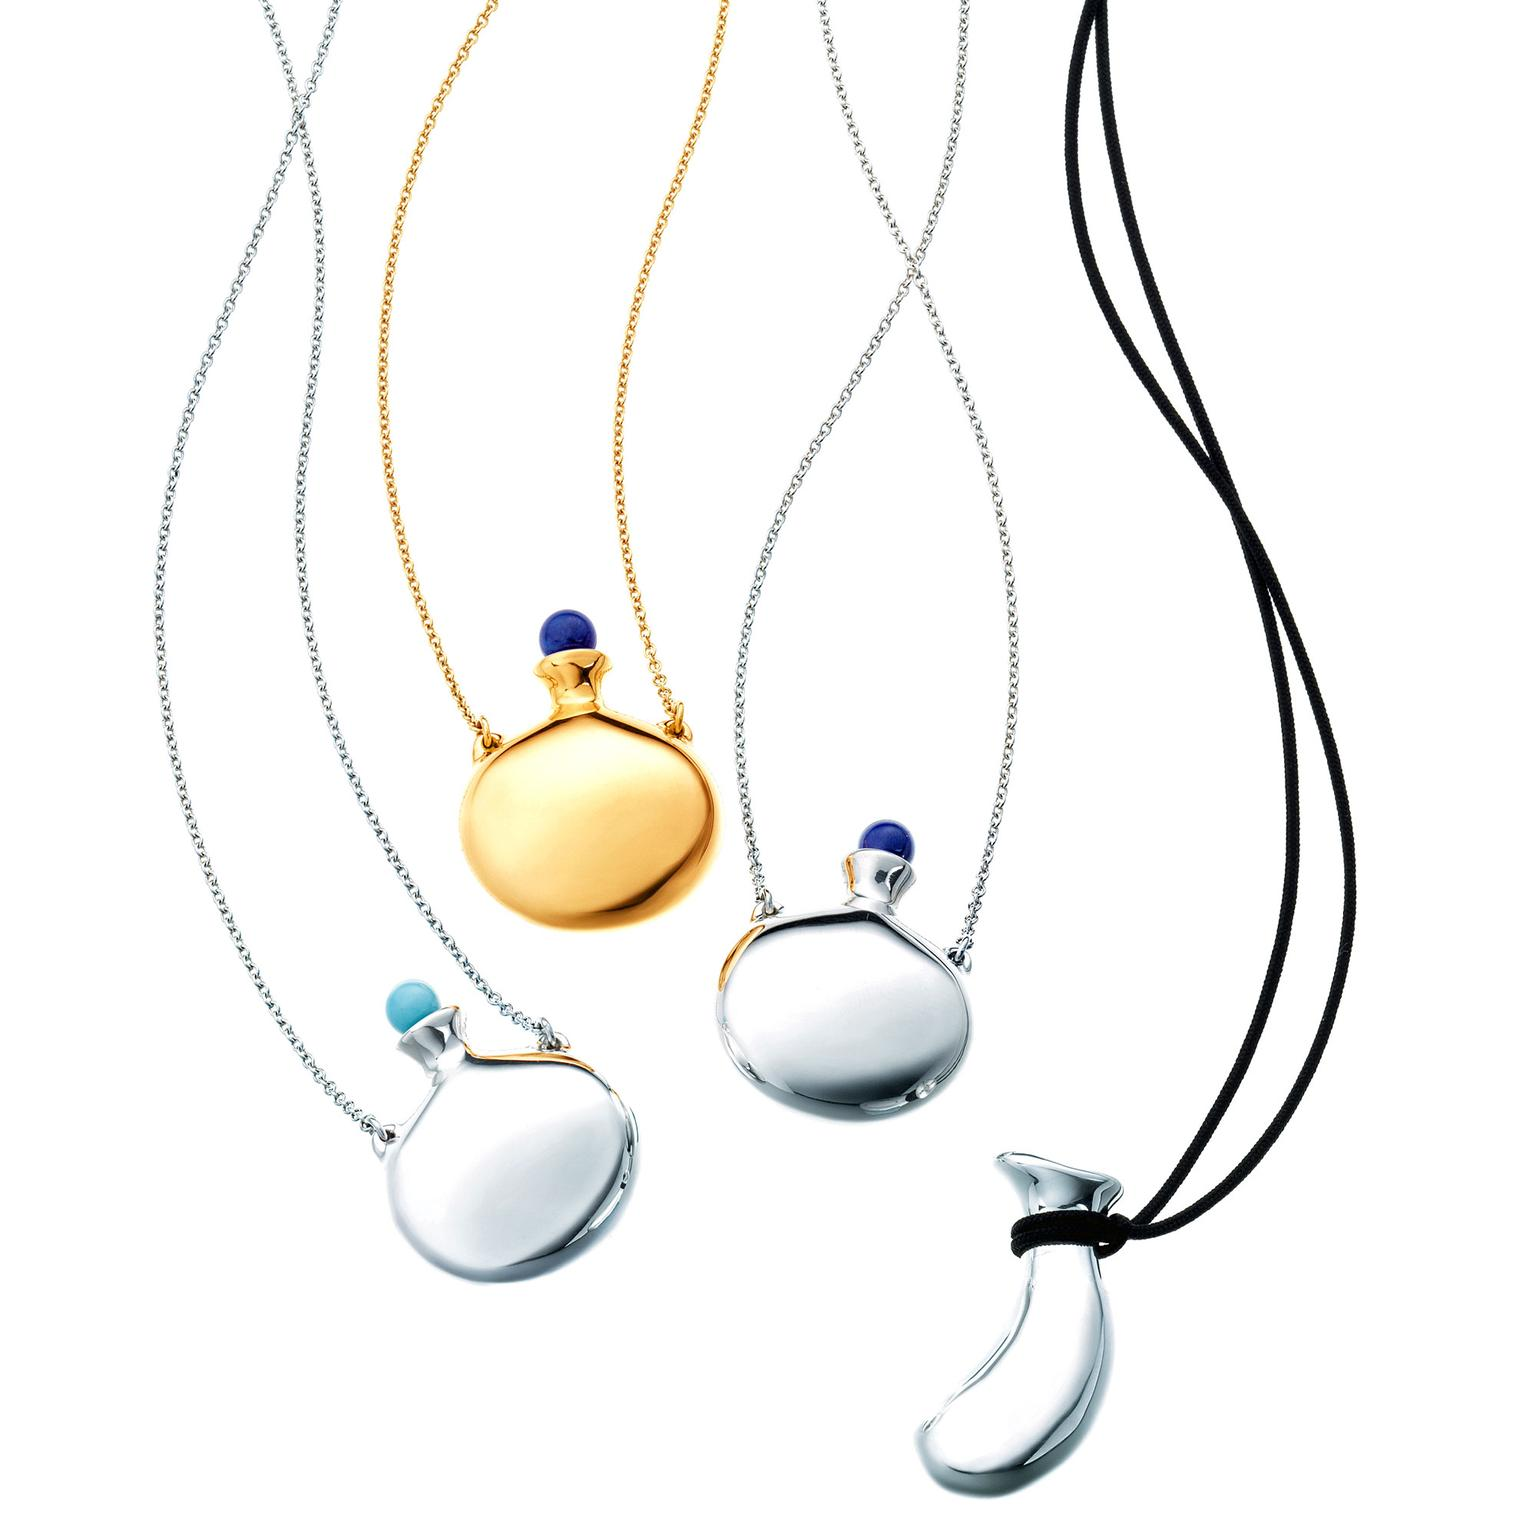 Elsa Peretti Bottle pendant necklaces